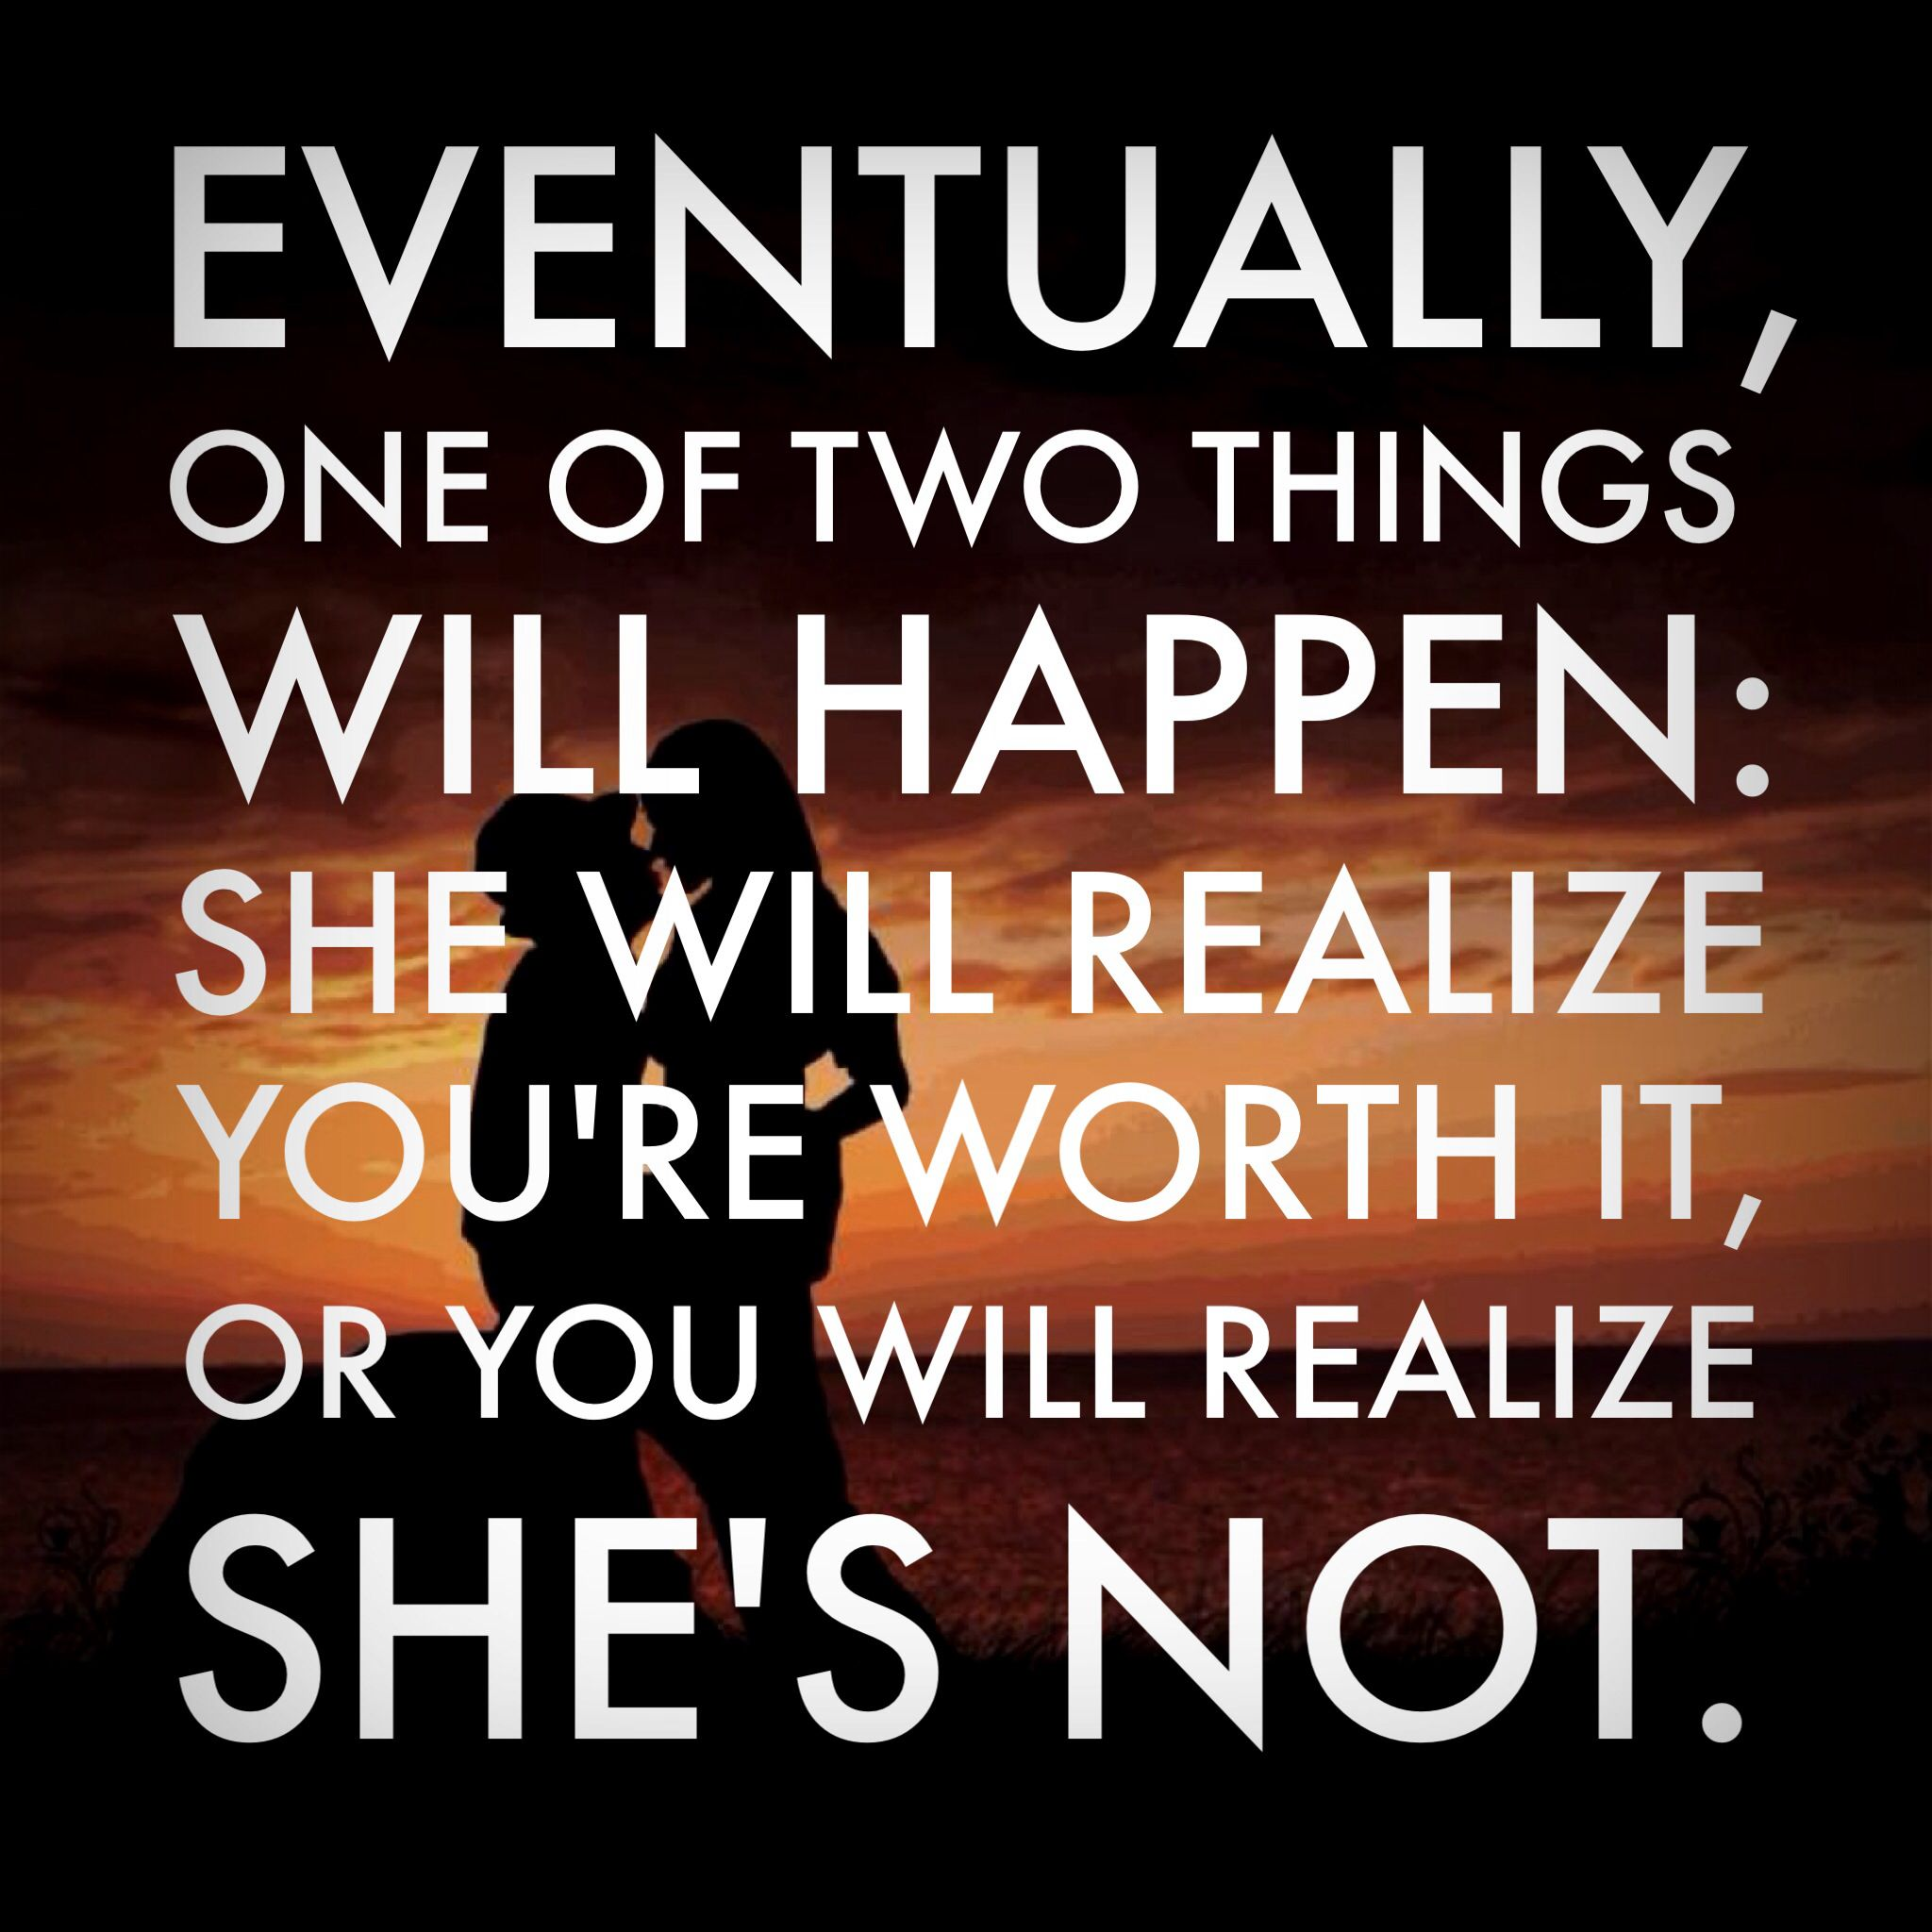 Eventually One Of Two Things Will Happen She Will Realize You Re Worth It Or You Will Realize She S Not Words Of Wisdom Life Quotes Words